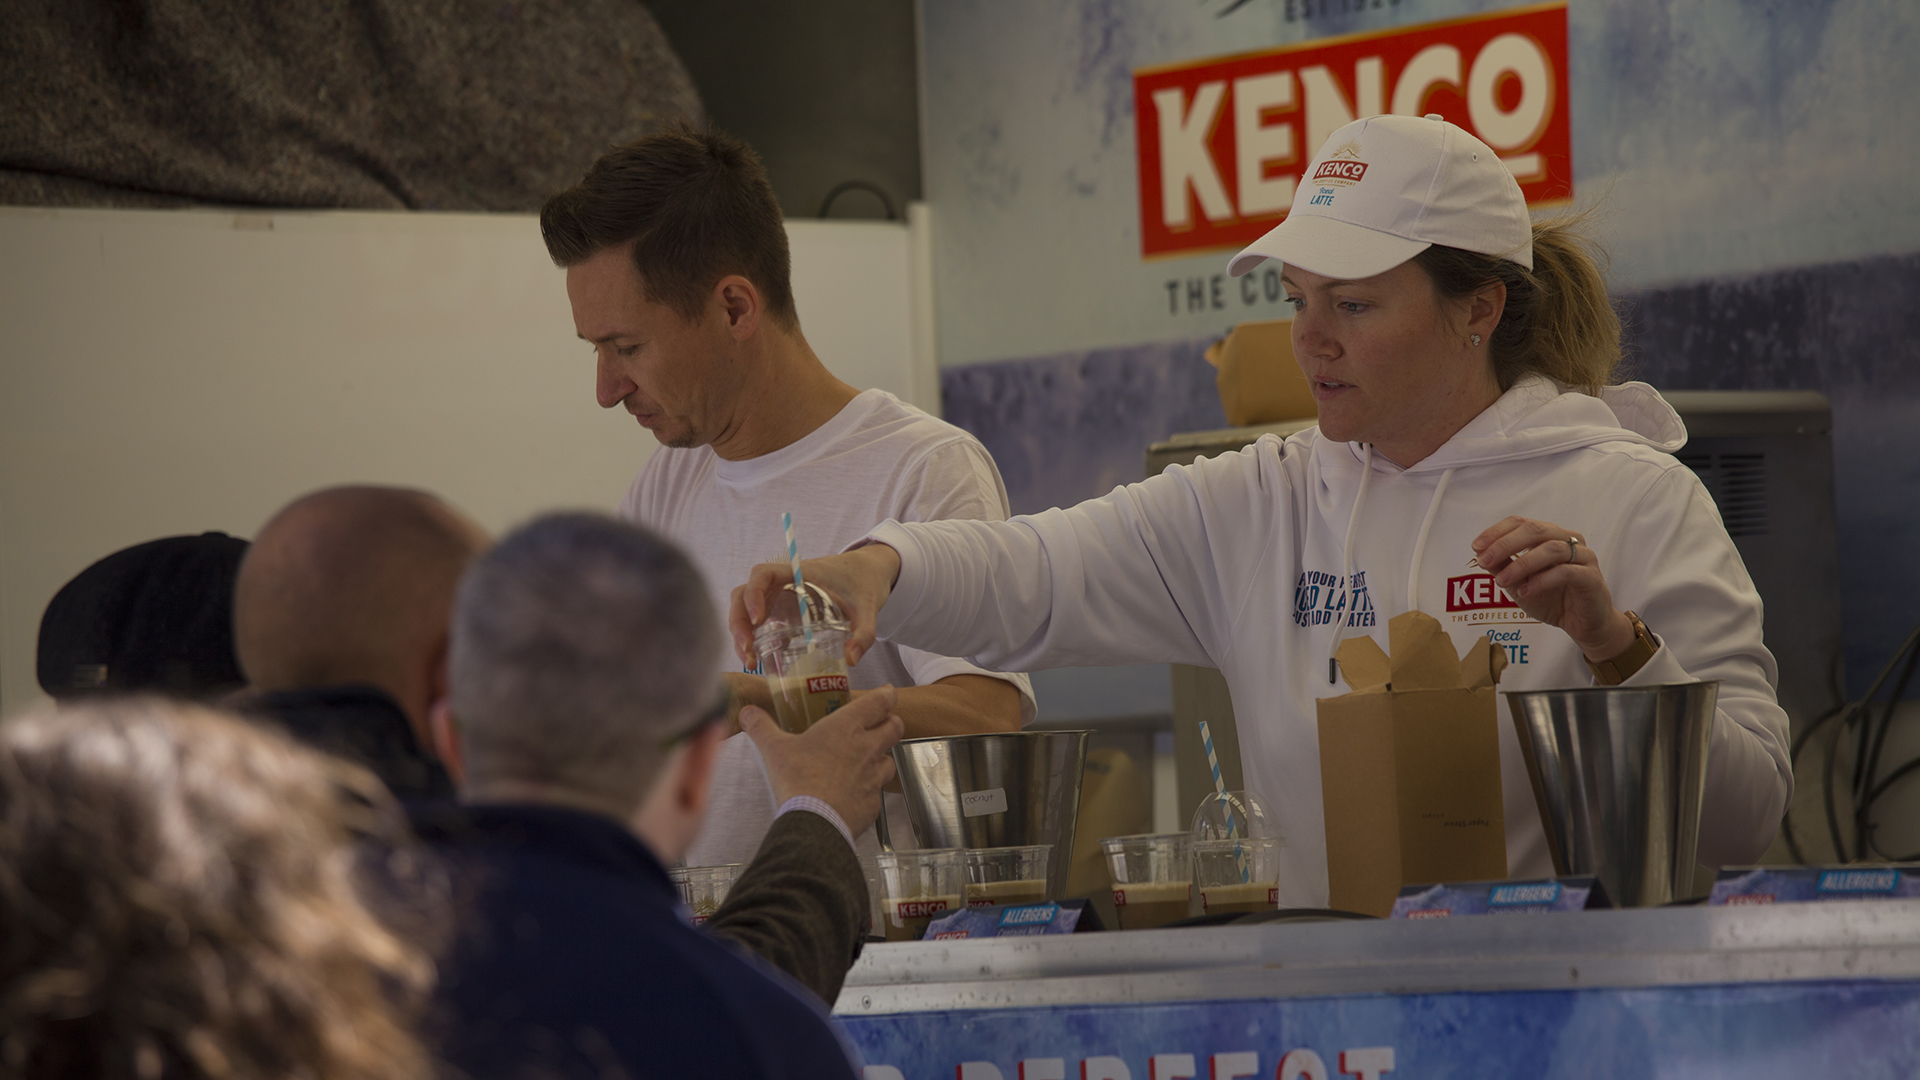 Kenco Iced Latte Sampling